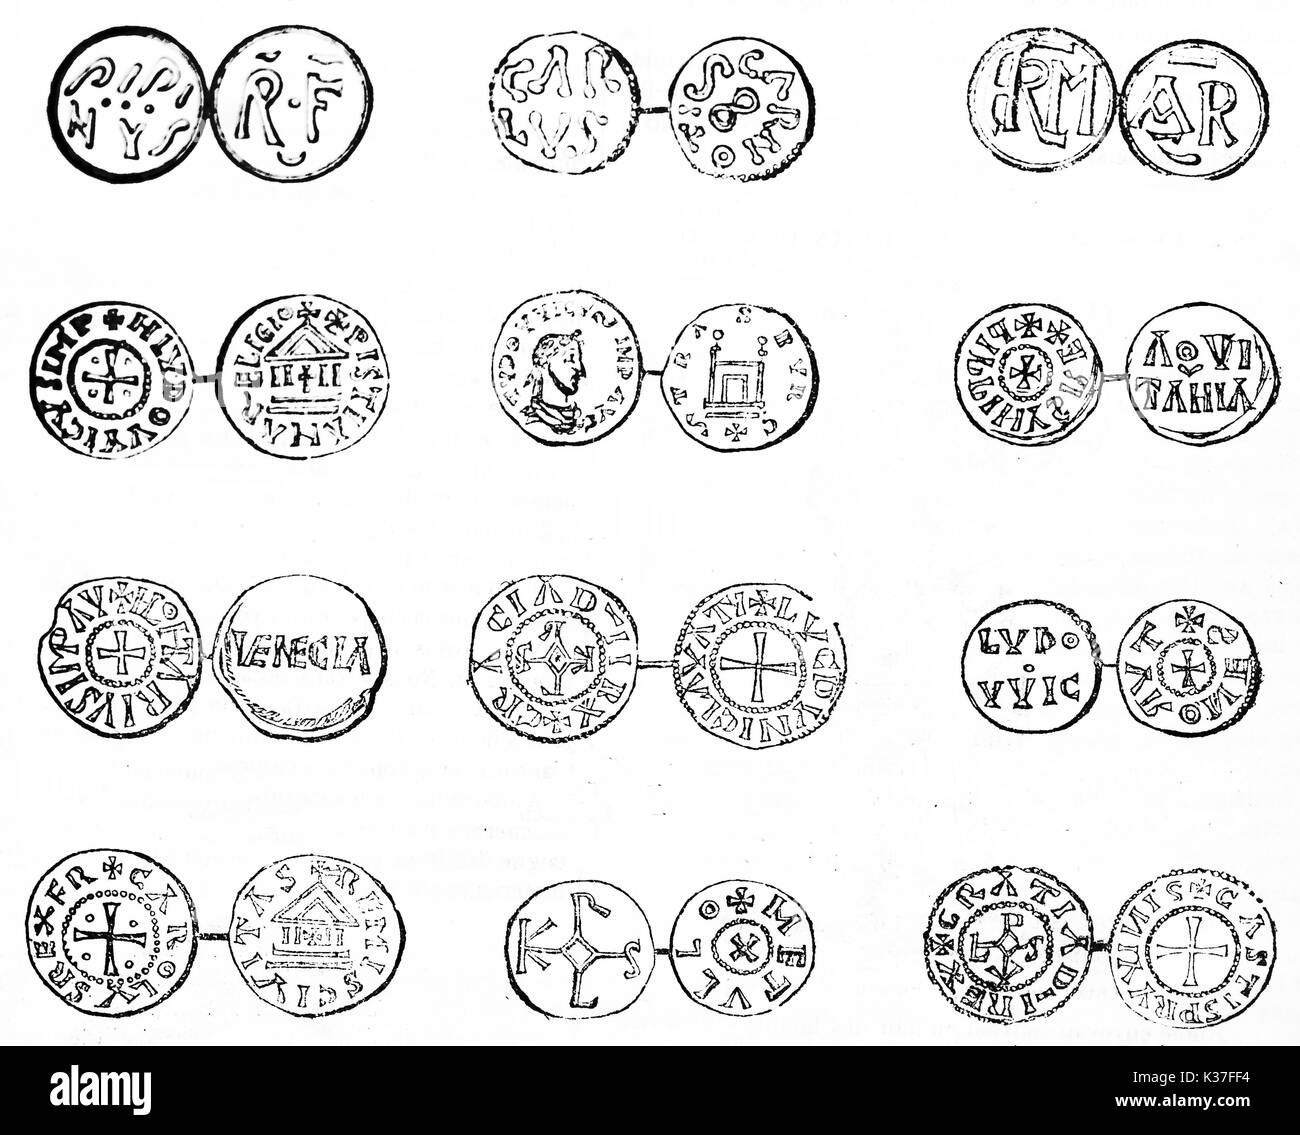 Antique set of french coins, isolated on white background. Old Illustration by unidentified author published on Magasin Pittoresque Paris 1834 - Stock Image